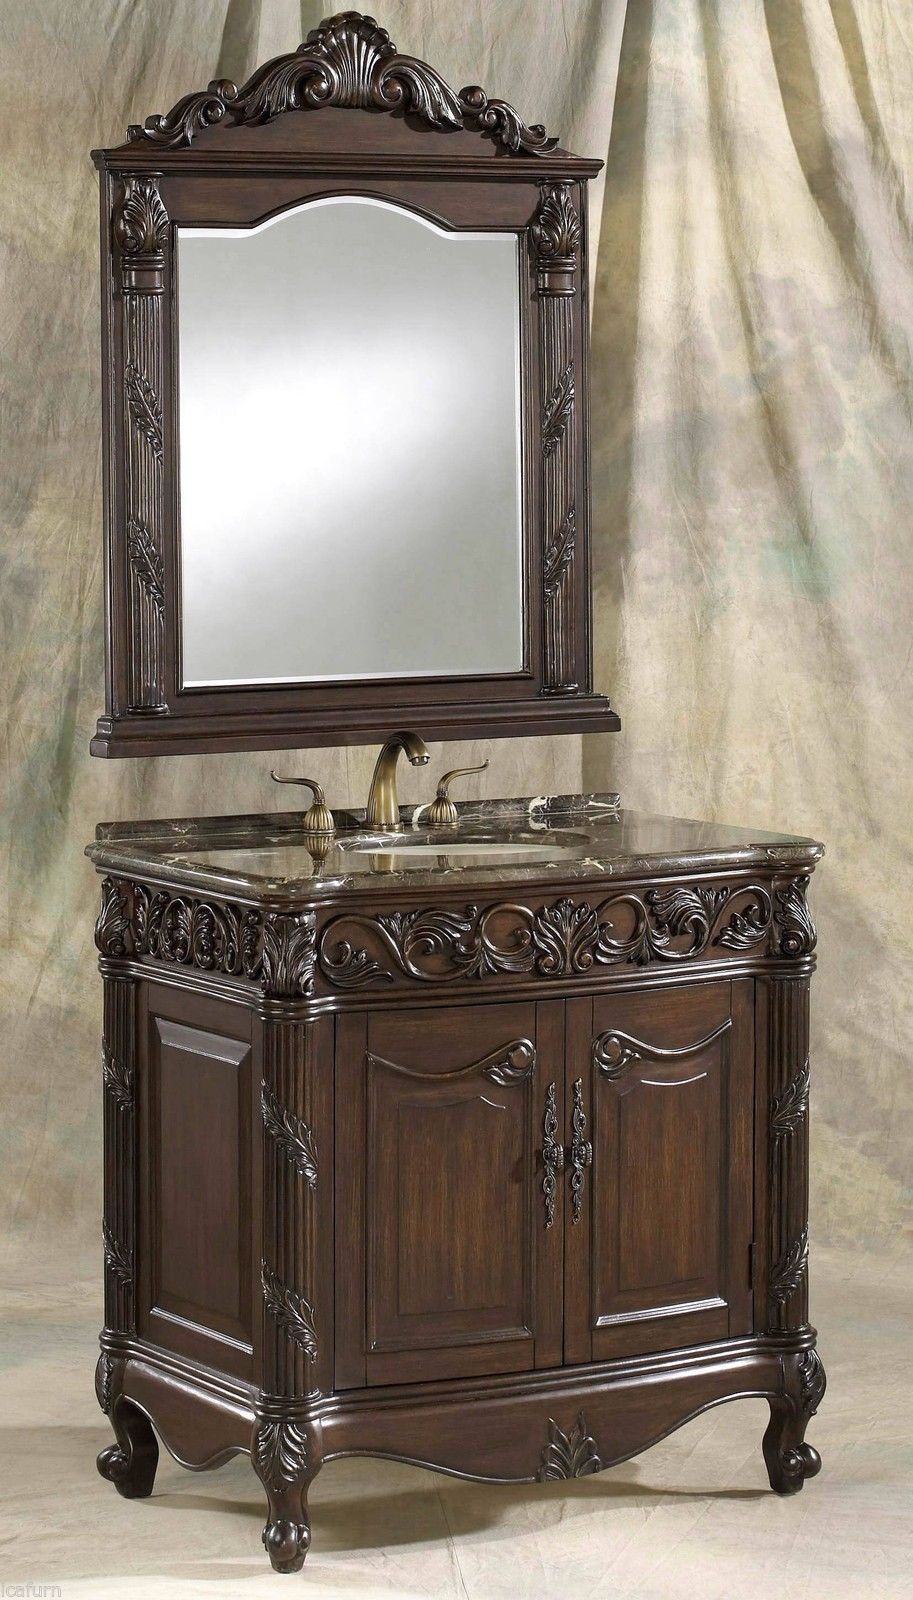 Vintage Bathroom Vanity Furniture